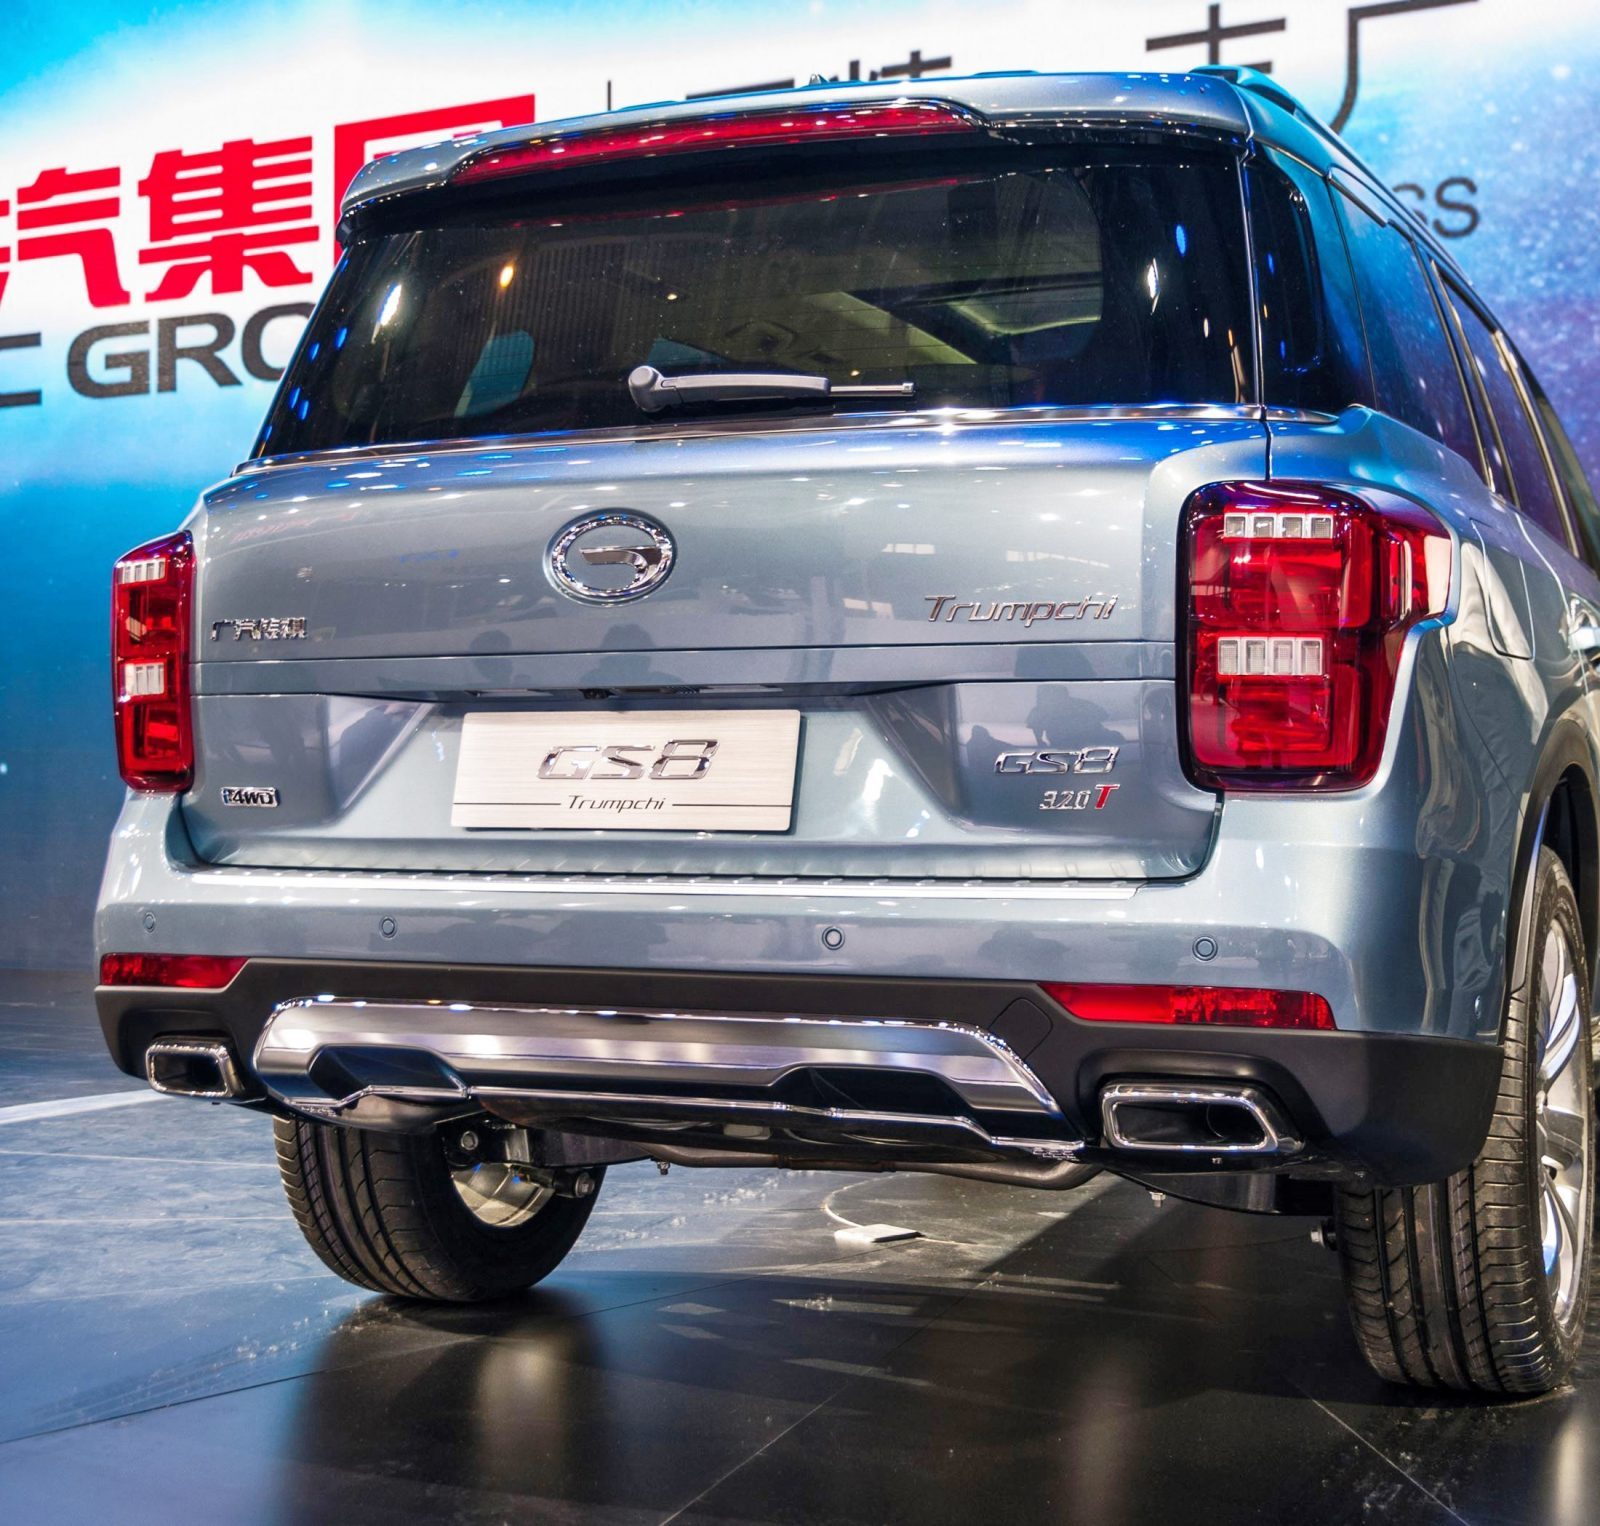 Trumpchi GS8-7253 copy